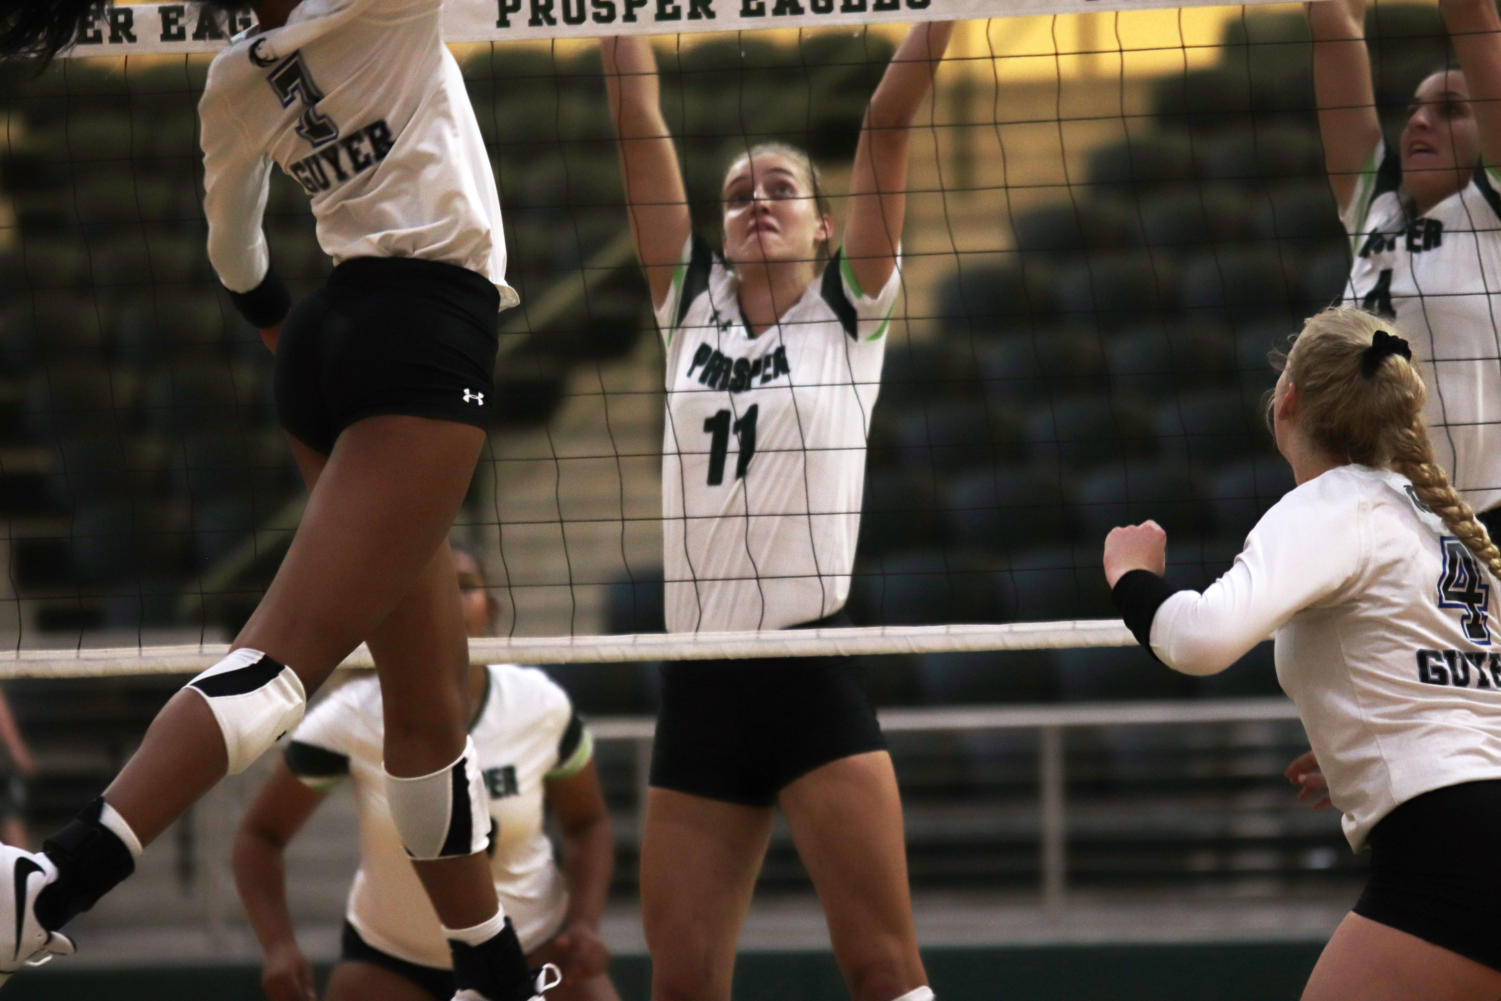 Shaylee+Shore%2C+No.+11%2C+prepares+to+block+a+shot+from+Denton+Guyer+in+the+volleyball+game+Aug.+16.+The+Lady+Eagles+currently+have+a+record+of+6-2+going+into+their+match+against+Rockwall+Heath+Aug.+22.+They+start+district+play+in+their+away+match+against+McKinney+High+School+Sep.+13.+